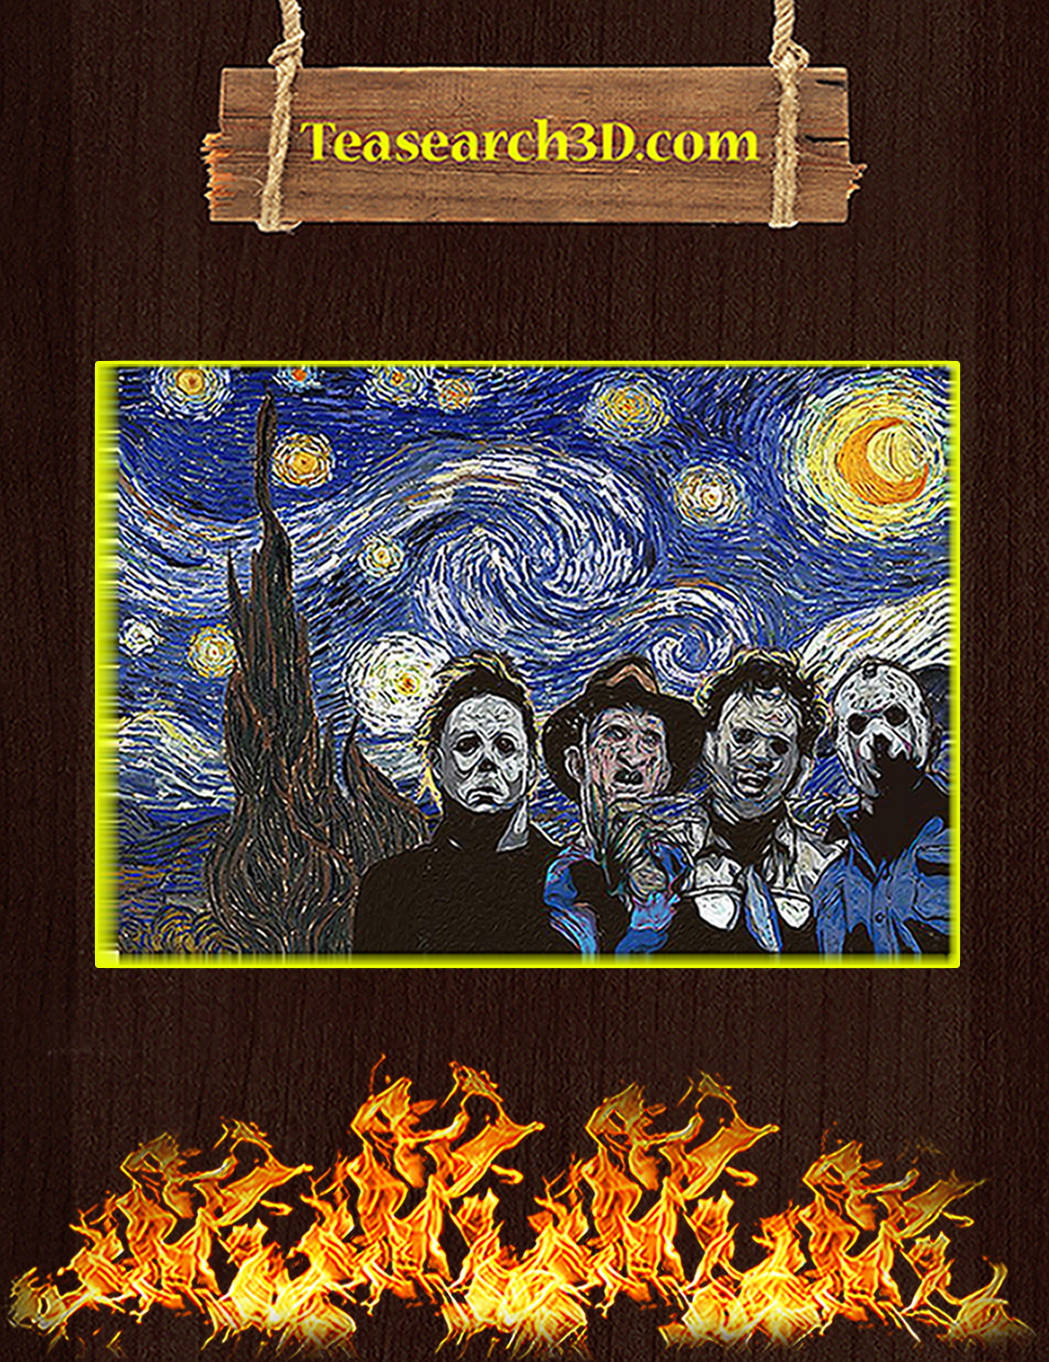 Horror movies killer starry night van gogh poster A1